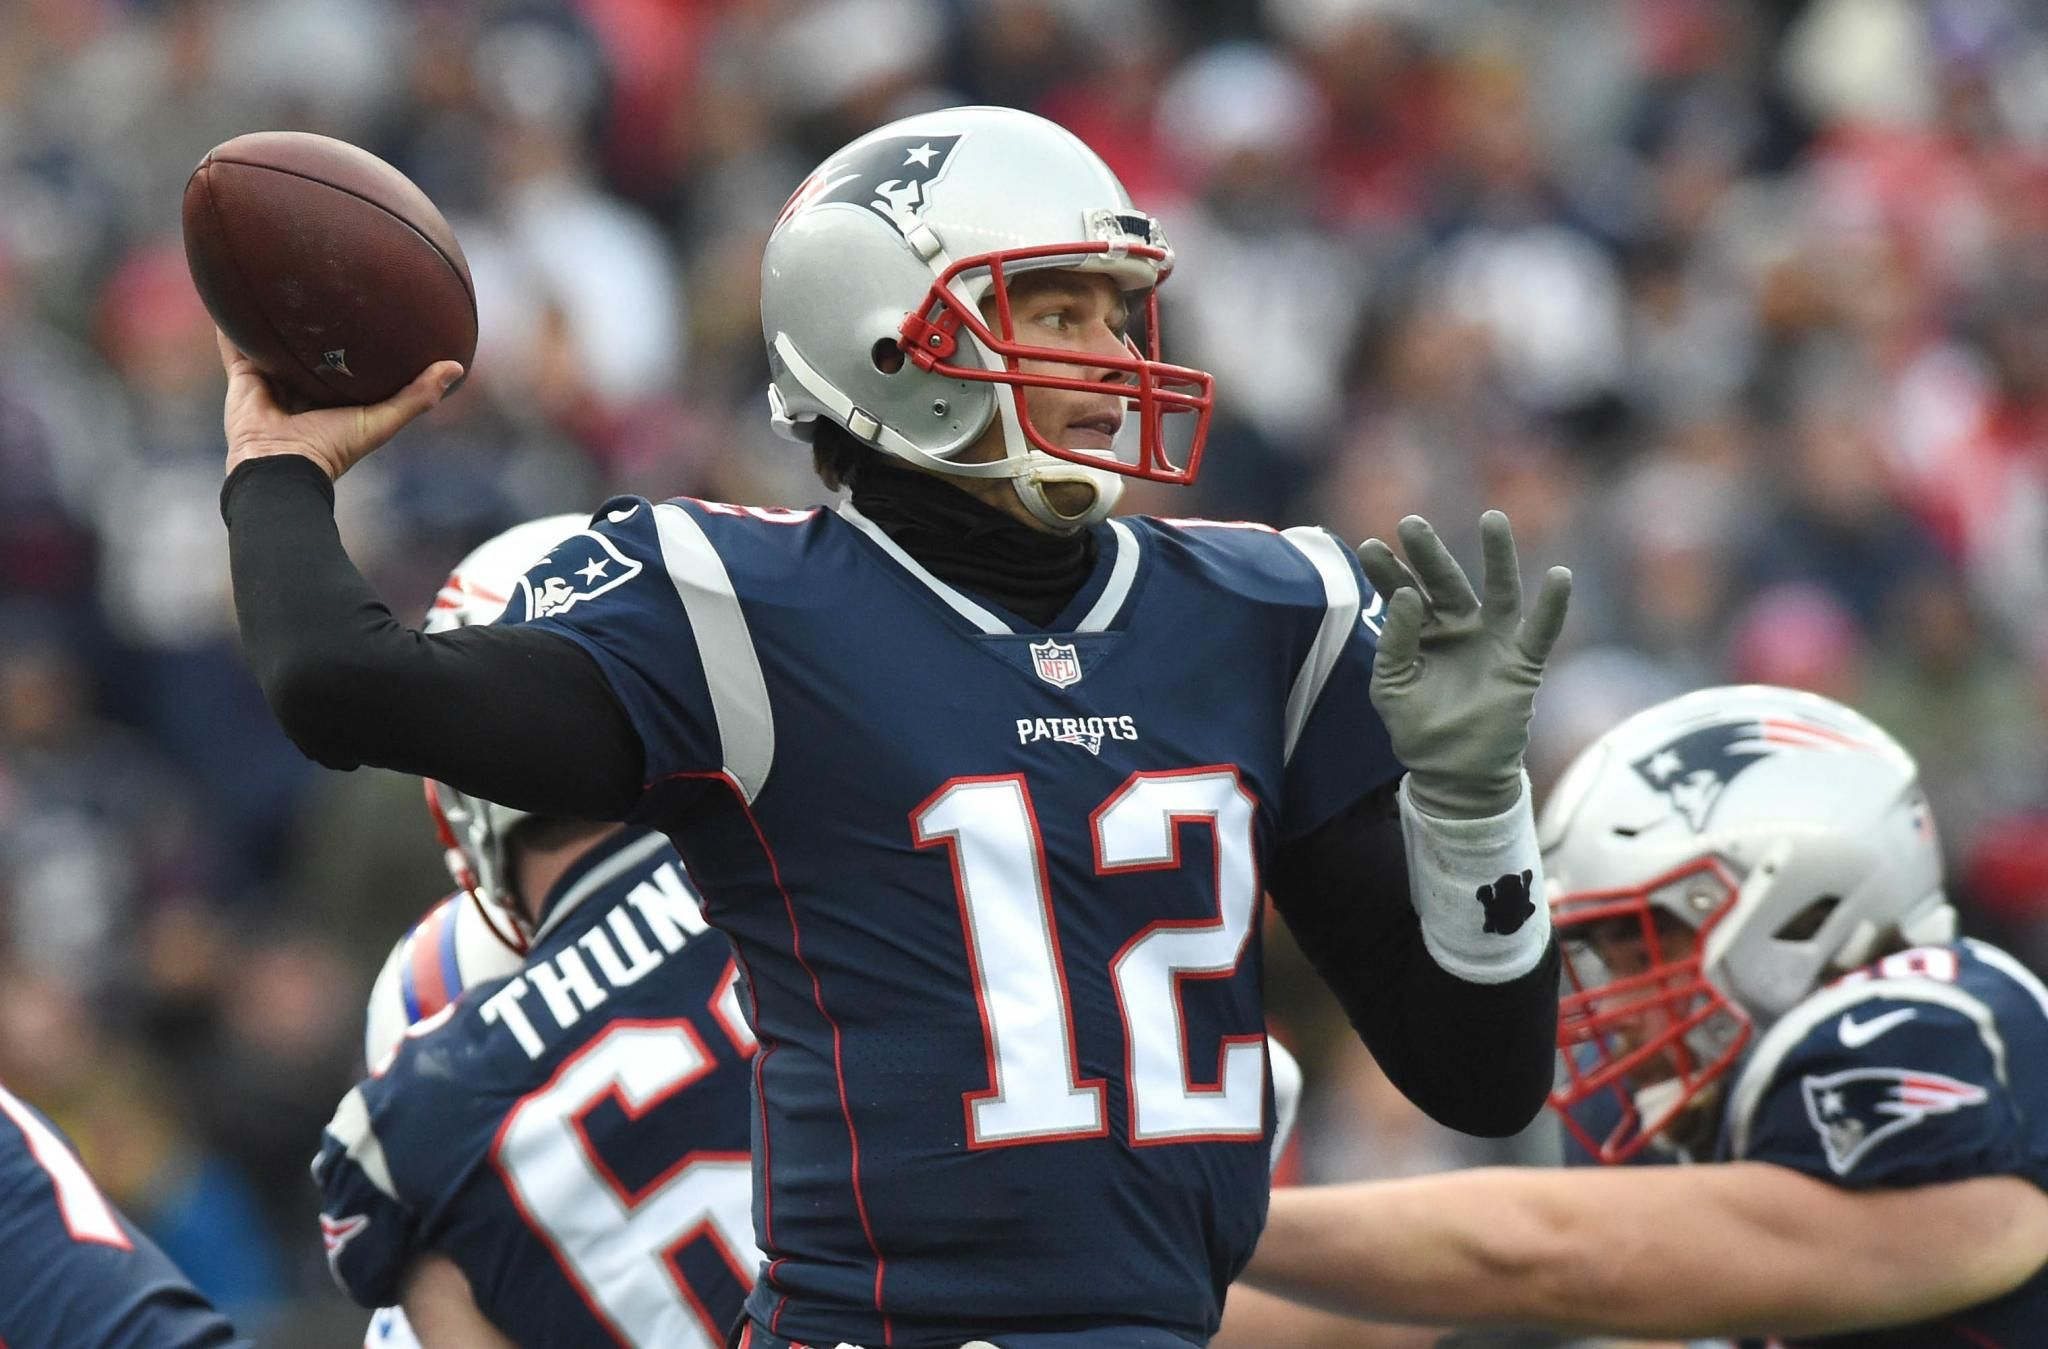 Tom Brady Reportedly Will Probably Wear Glove On Throwing Hand But Patriots Don T Believe Injury Will Be Significant Fact Football Fantasy Football Patriots